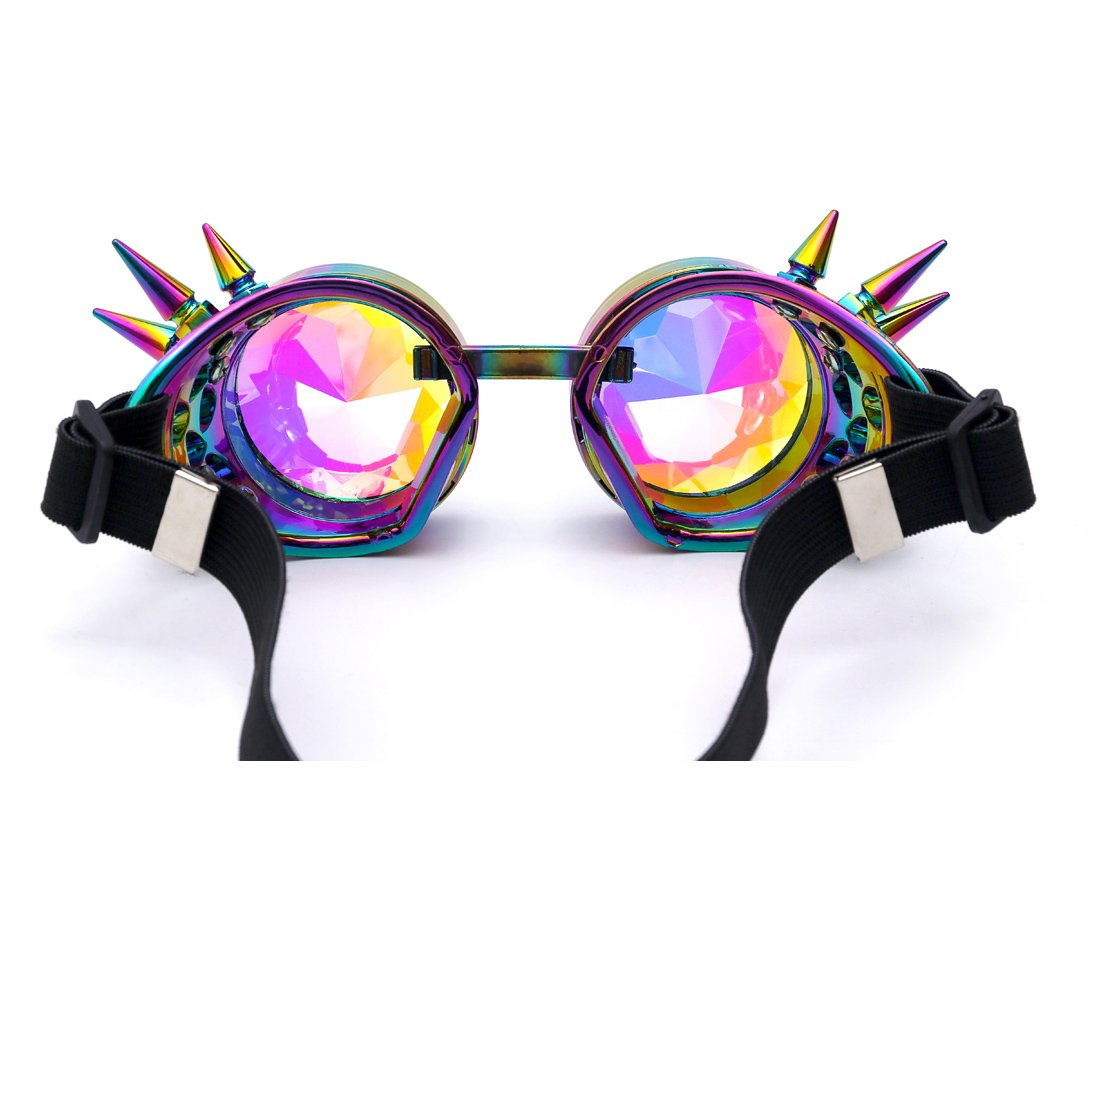 FIRSTLIKE Festivals Kaleidoscope Rainbow Glasses Prism Sunglasses Goggles by FIRSTLIKE (Image #5)